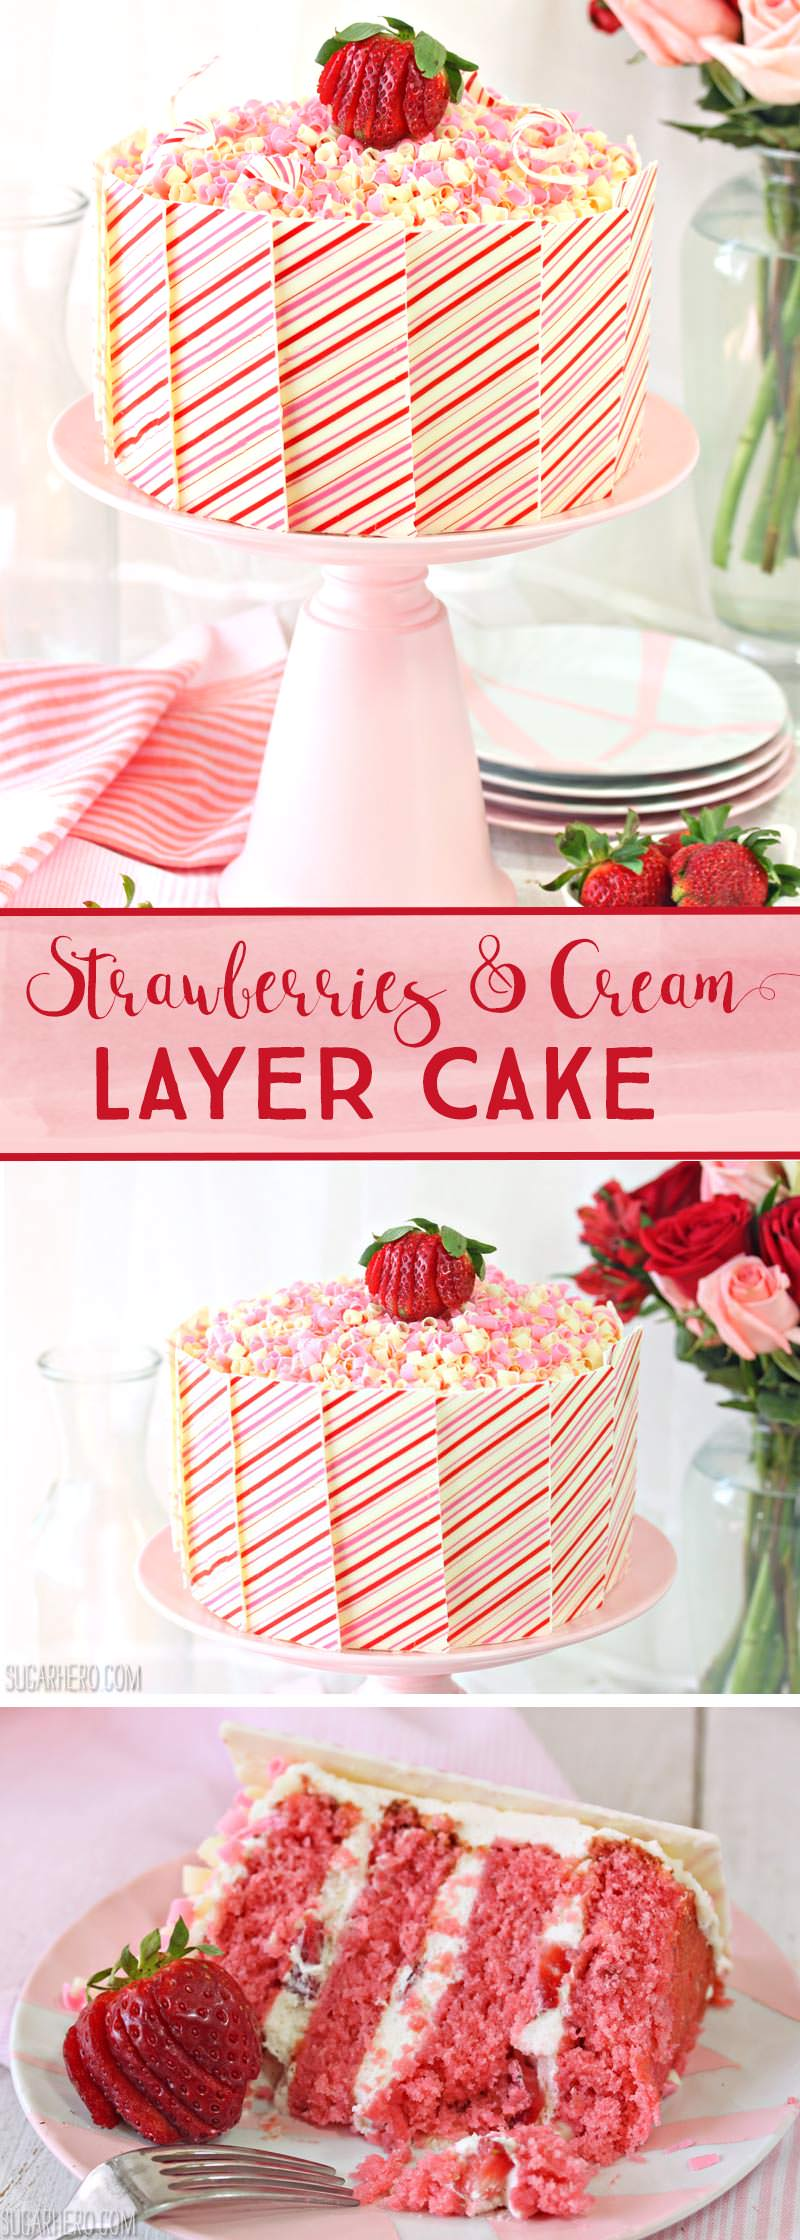 Strawberries and Cream Layer Cake - with moist strawberry cake, fresh berries, and whipped cream! | From SugarHero.com